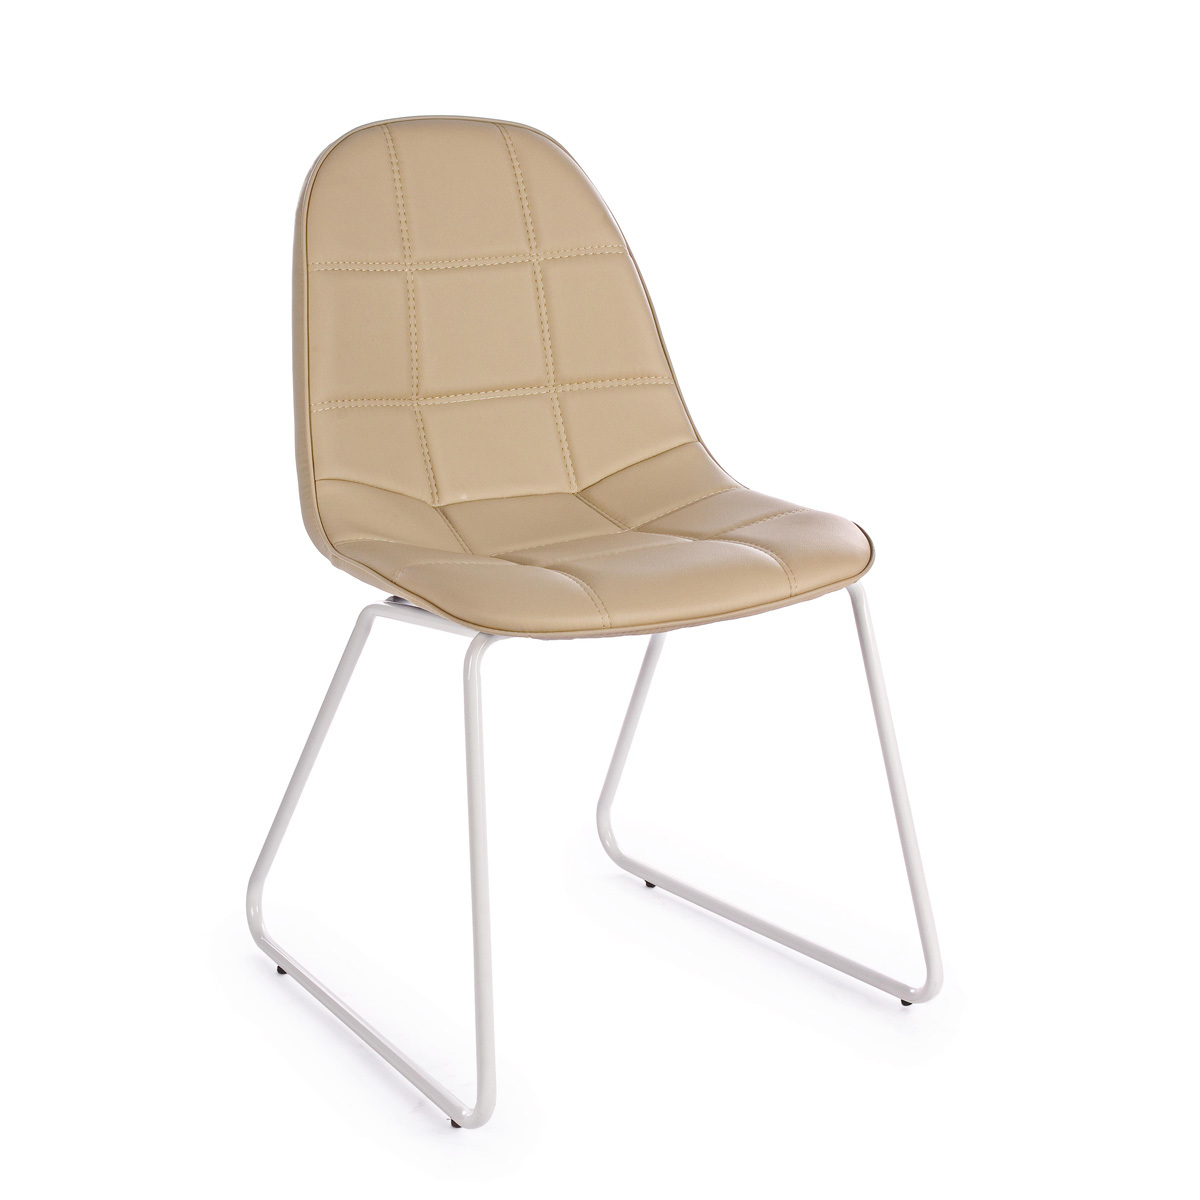 Photos 1: Bizzotto Chair in metal and eco-leather - tortora 0731656